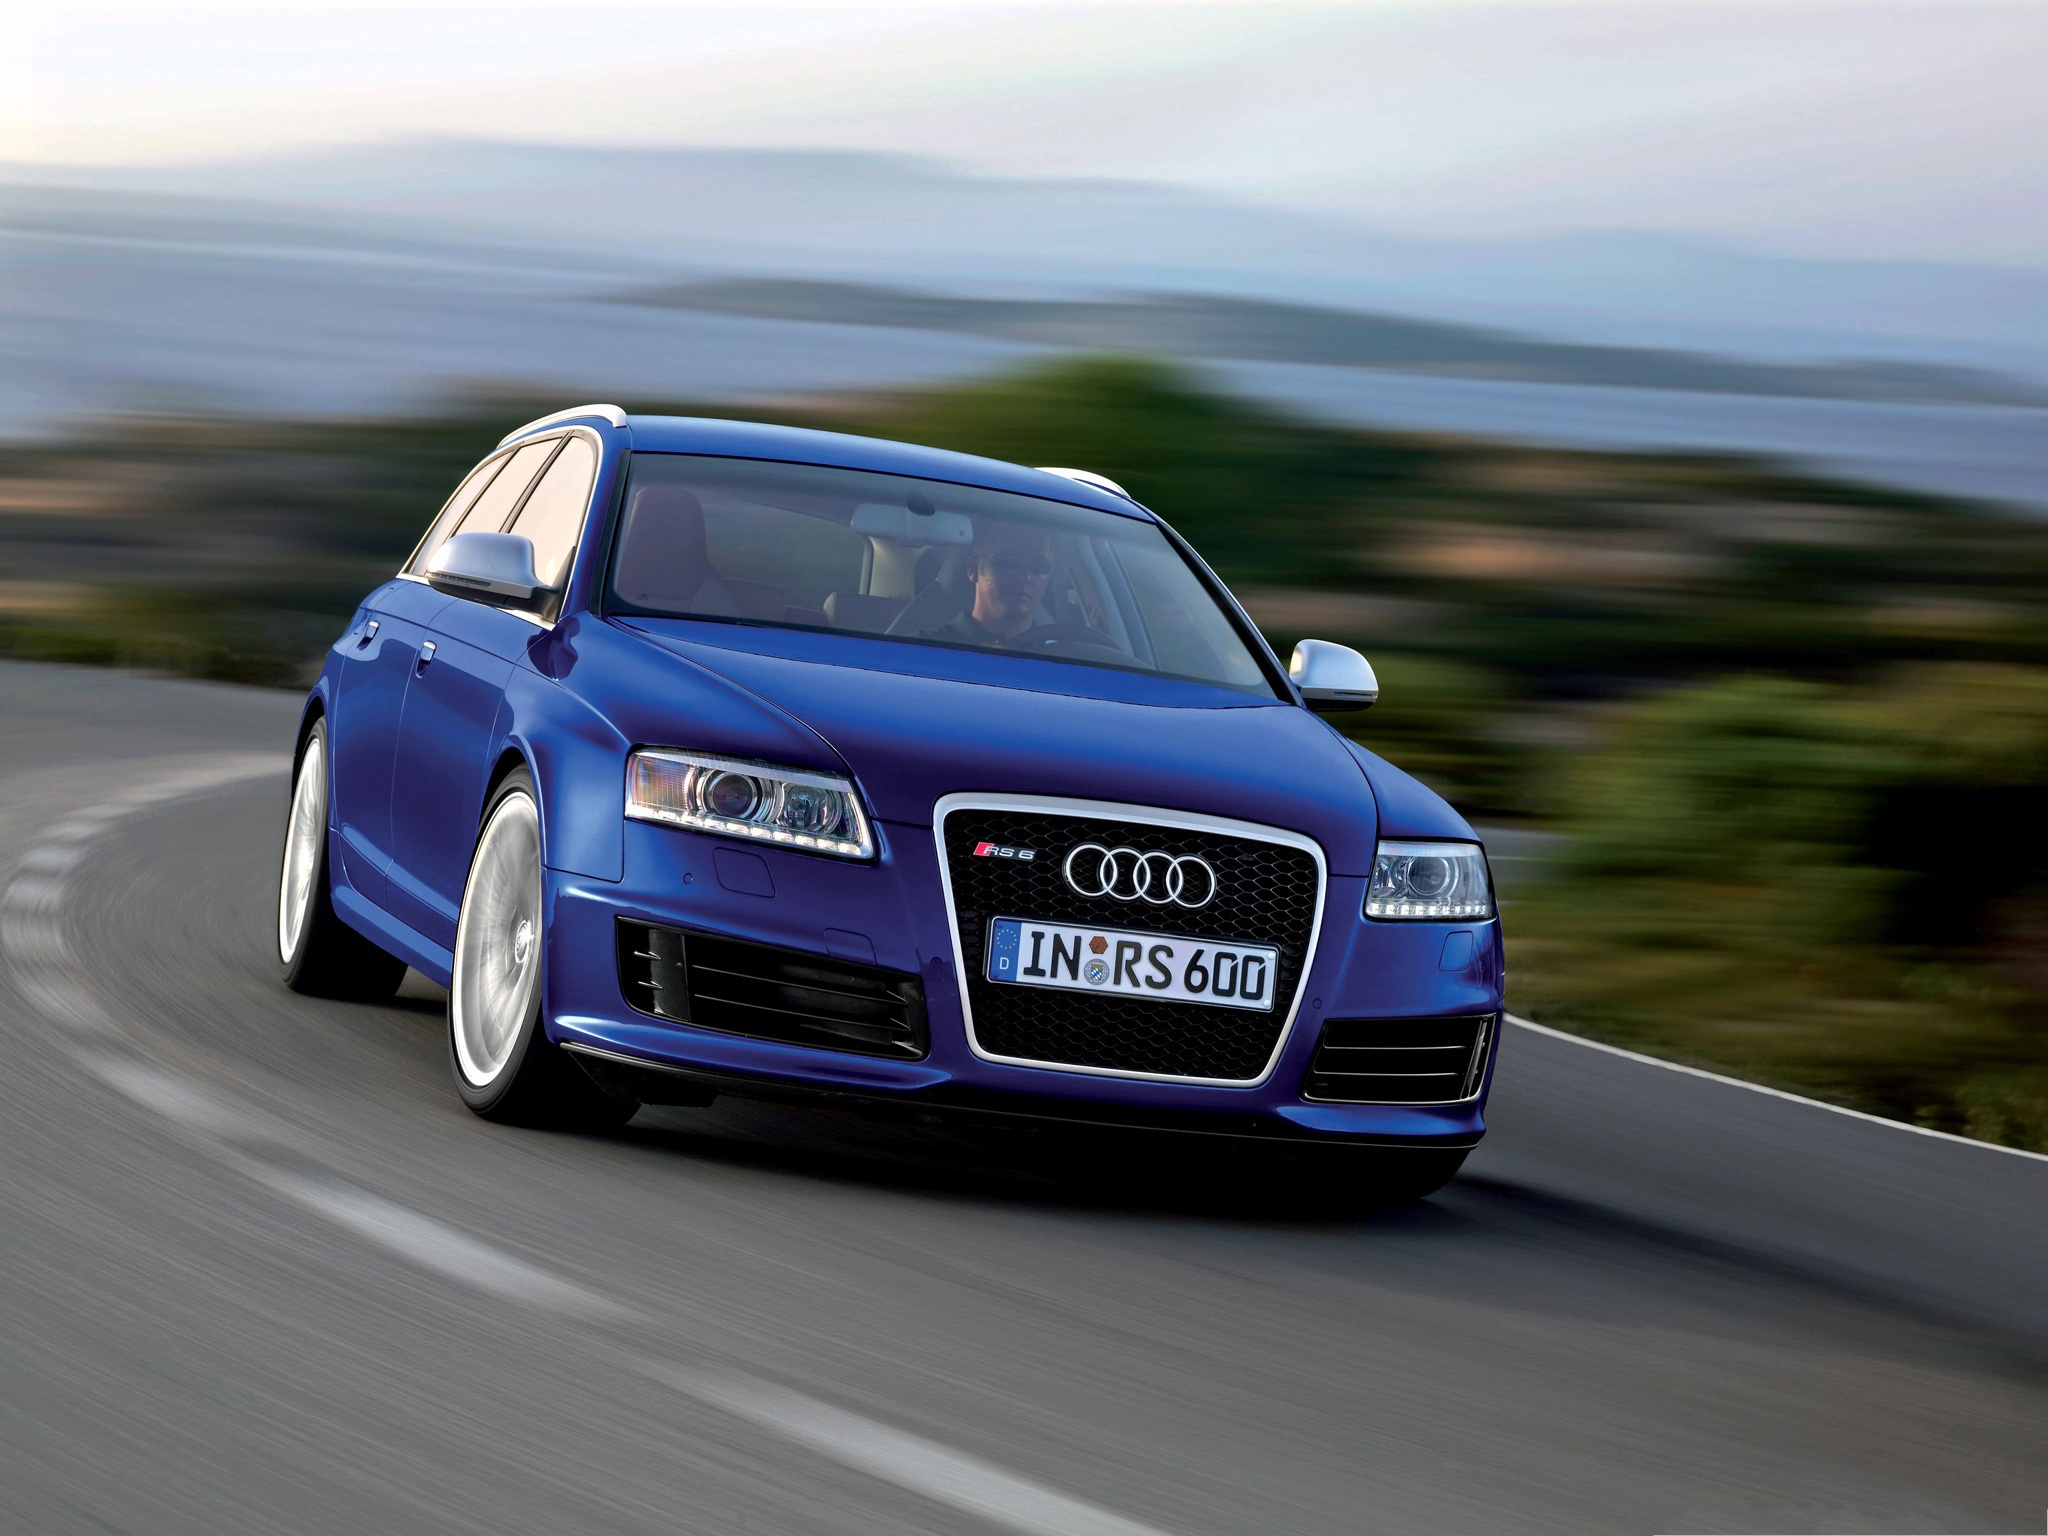 Car Pictures as Background, Blue Audi RS6 Avant Car in